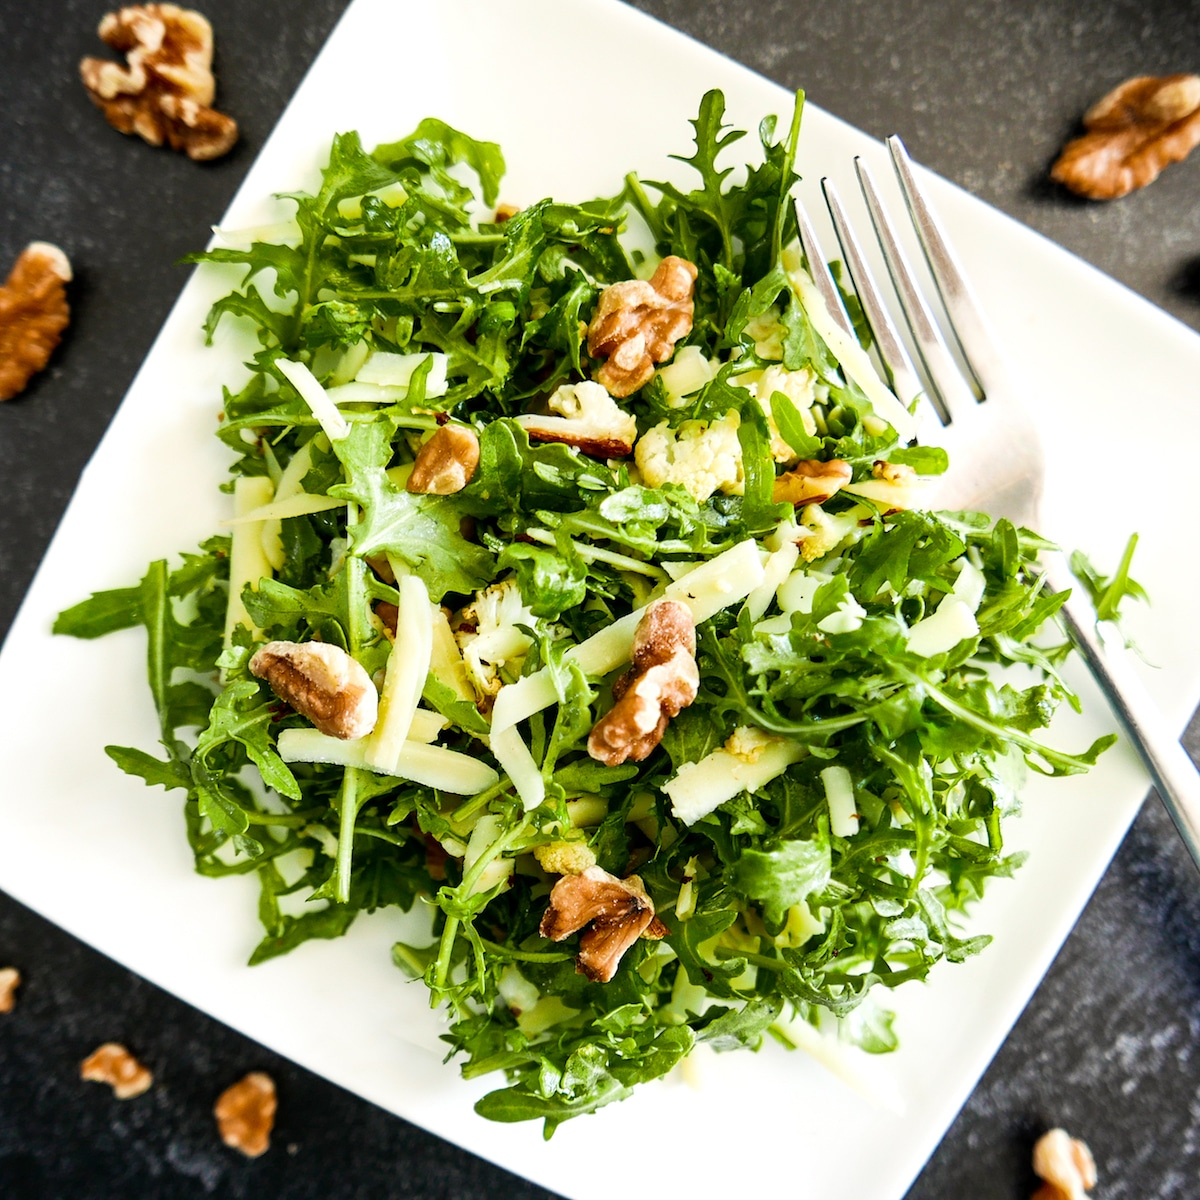 cauliflower salad with walnuts on a white plate with fork and walnuts scattered around